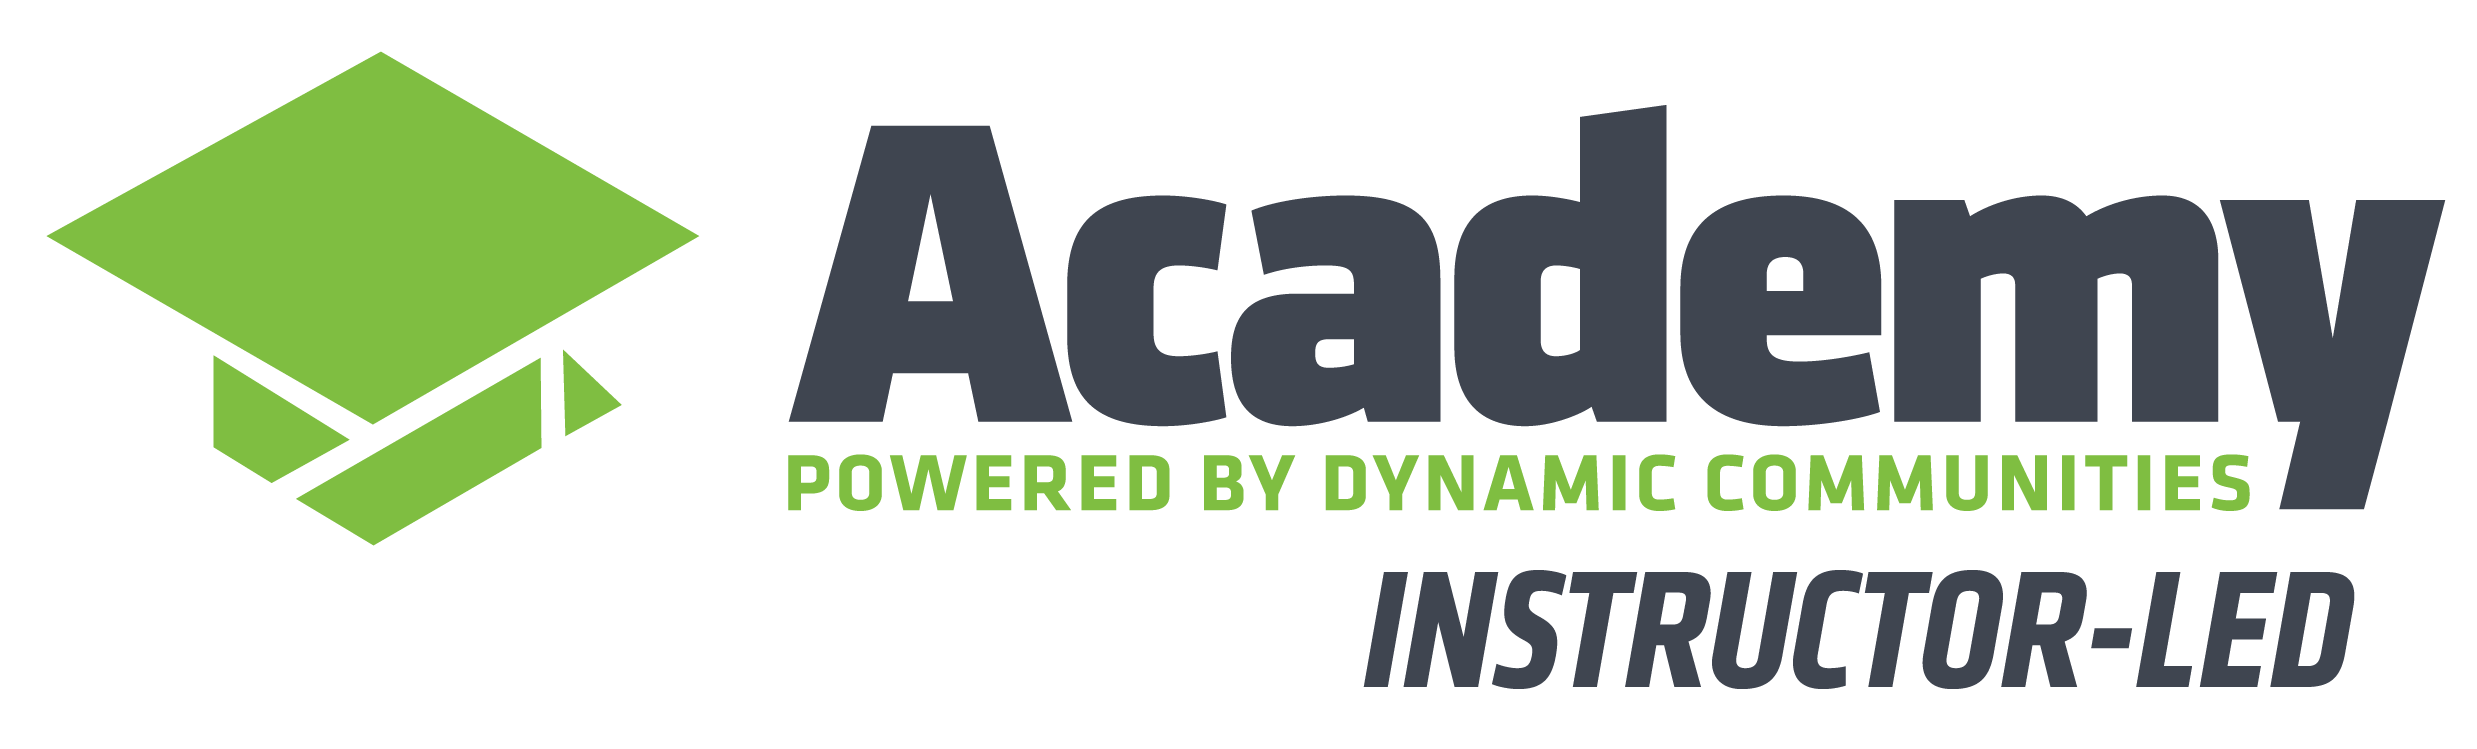 Instructor-Led Academy powered by Dynamic Communities logo